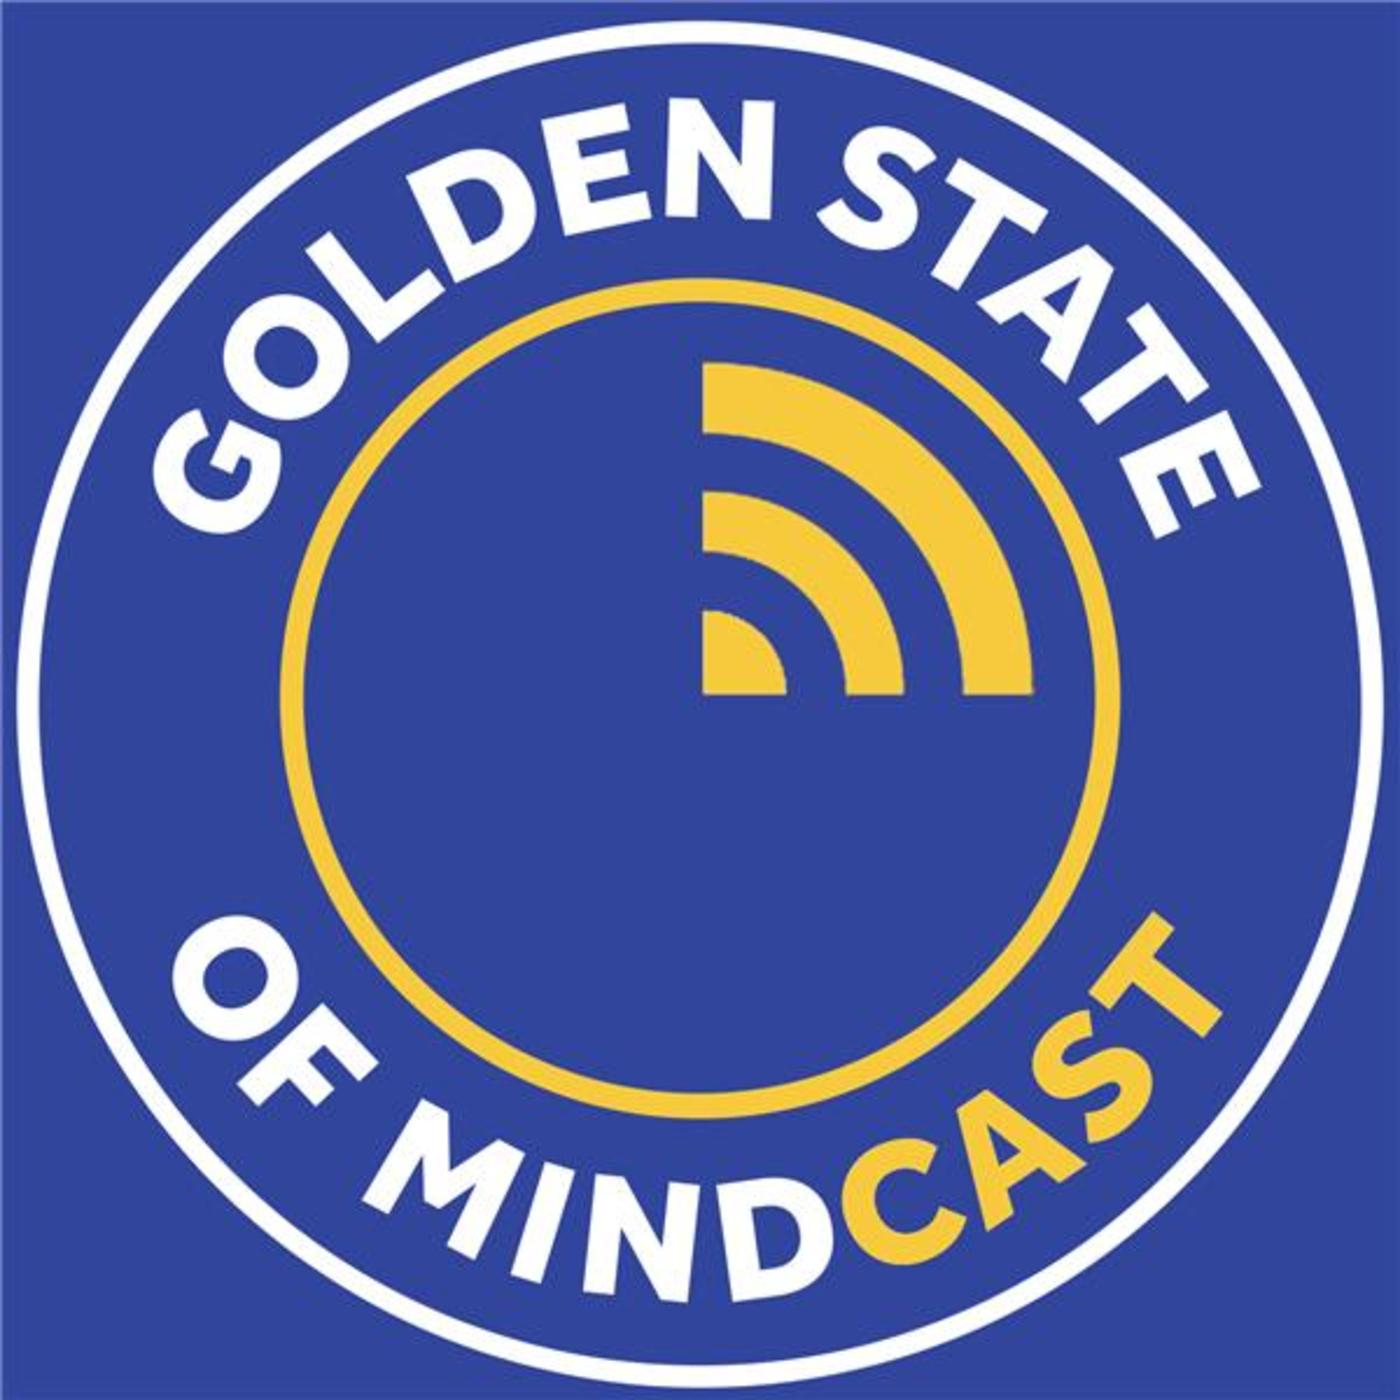 Golden State of Mindcast